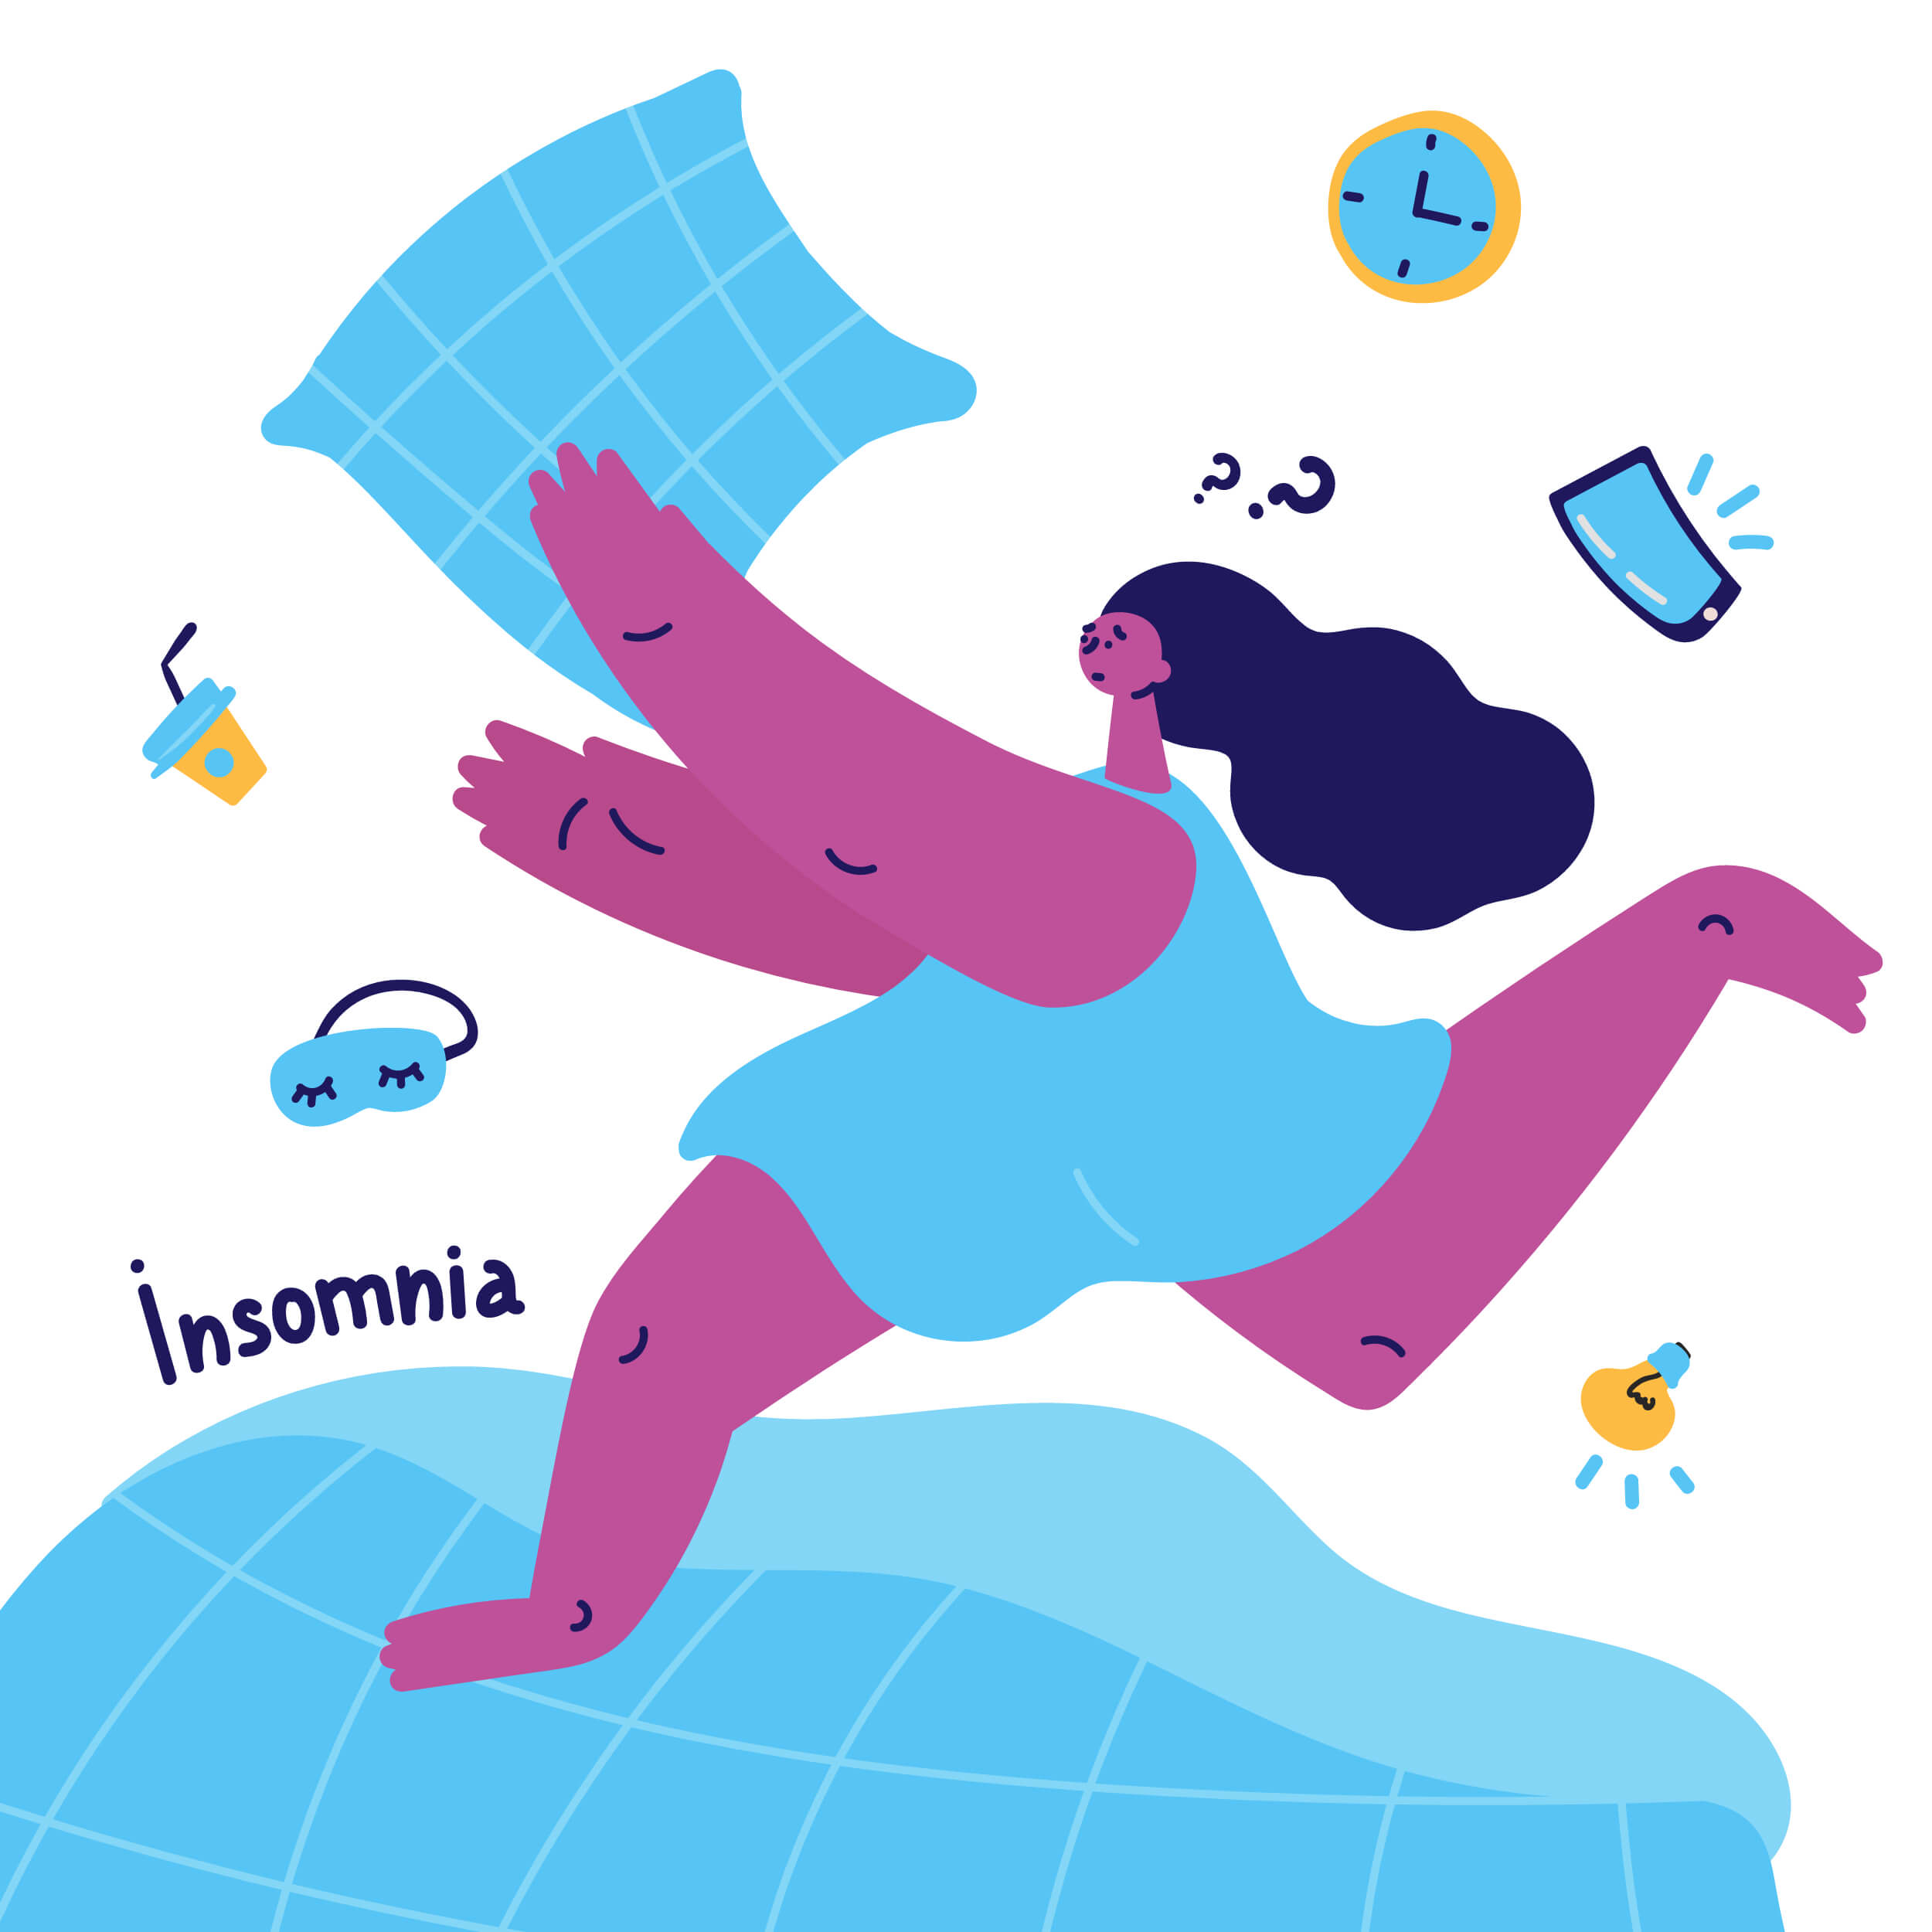 insomnia-trouble-sleeping